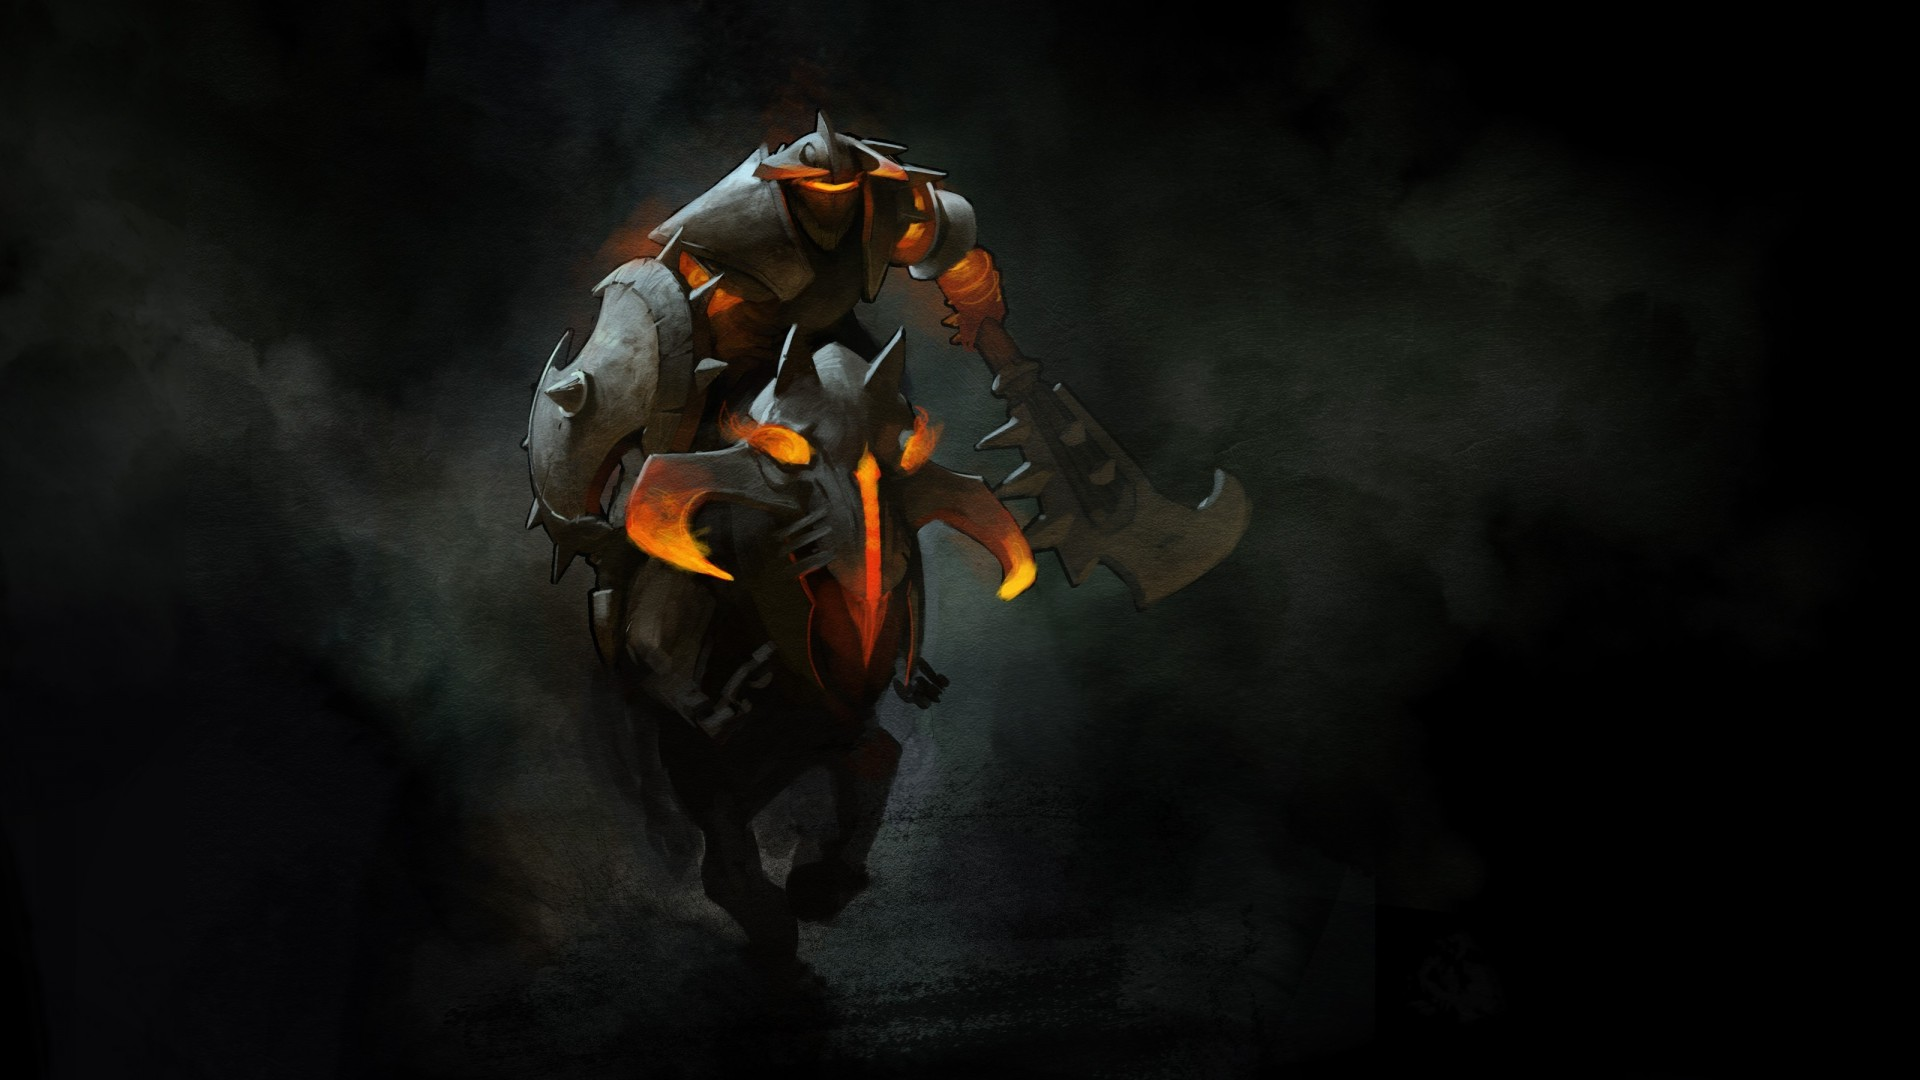 Dota 2 Chaos Knight Wallpapers For Android Is Cool Wallpapers